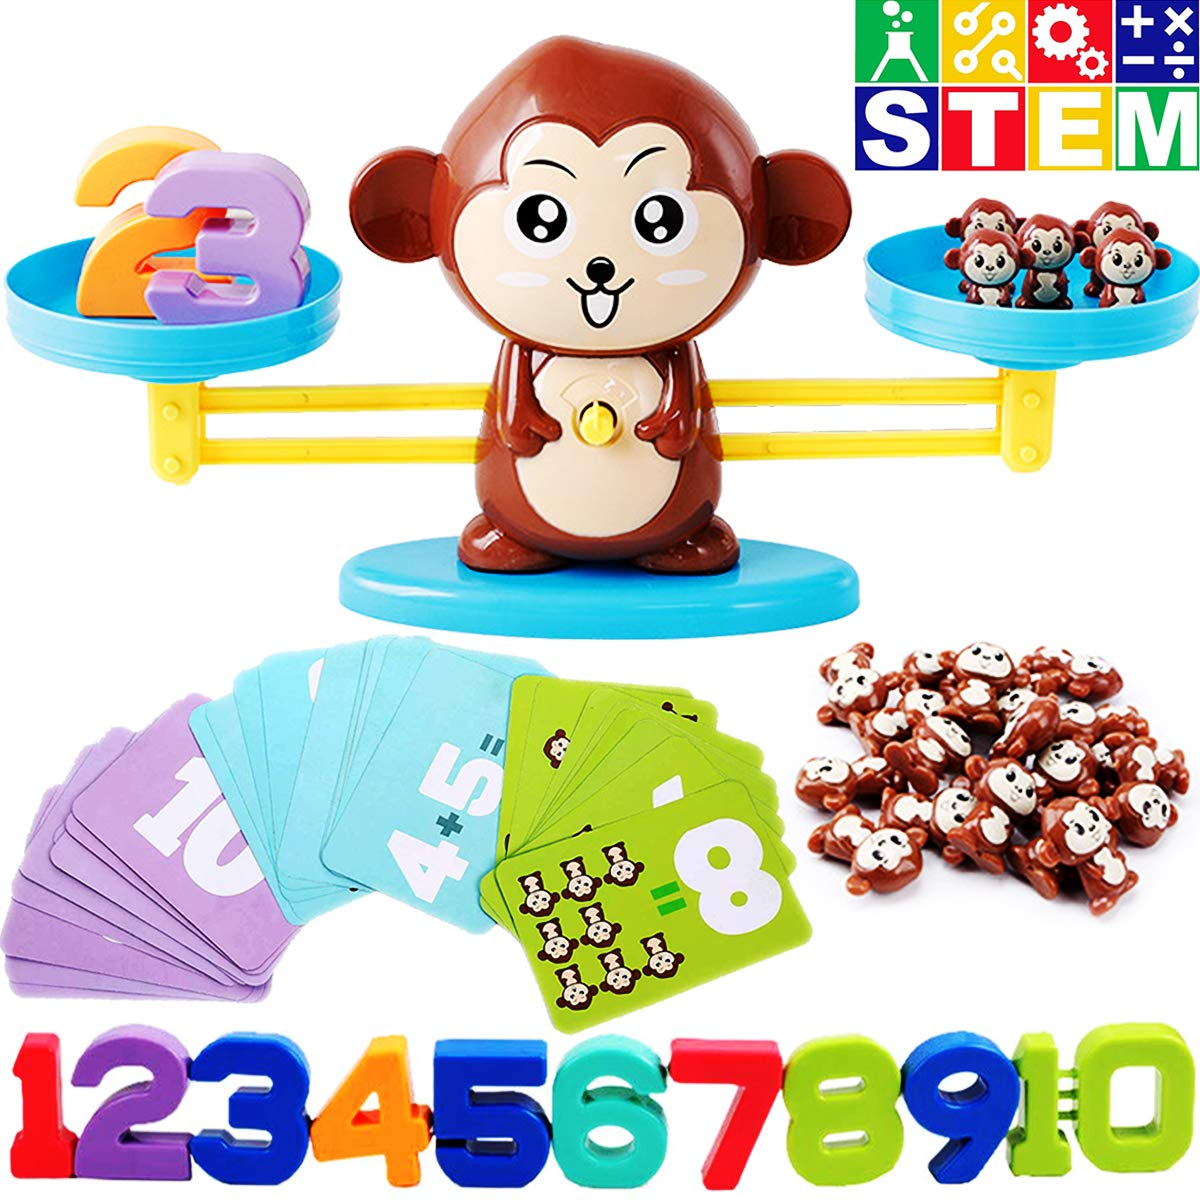 CozyBomB Monkey Balance Counting Toys Games - Math Educational Toddler STEM Toy for 3 4 5 Years Old Age Kindergarten - Number Learning Material for Boys and Girls